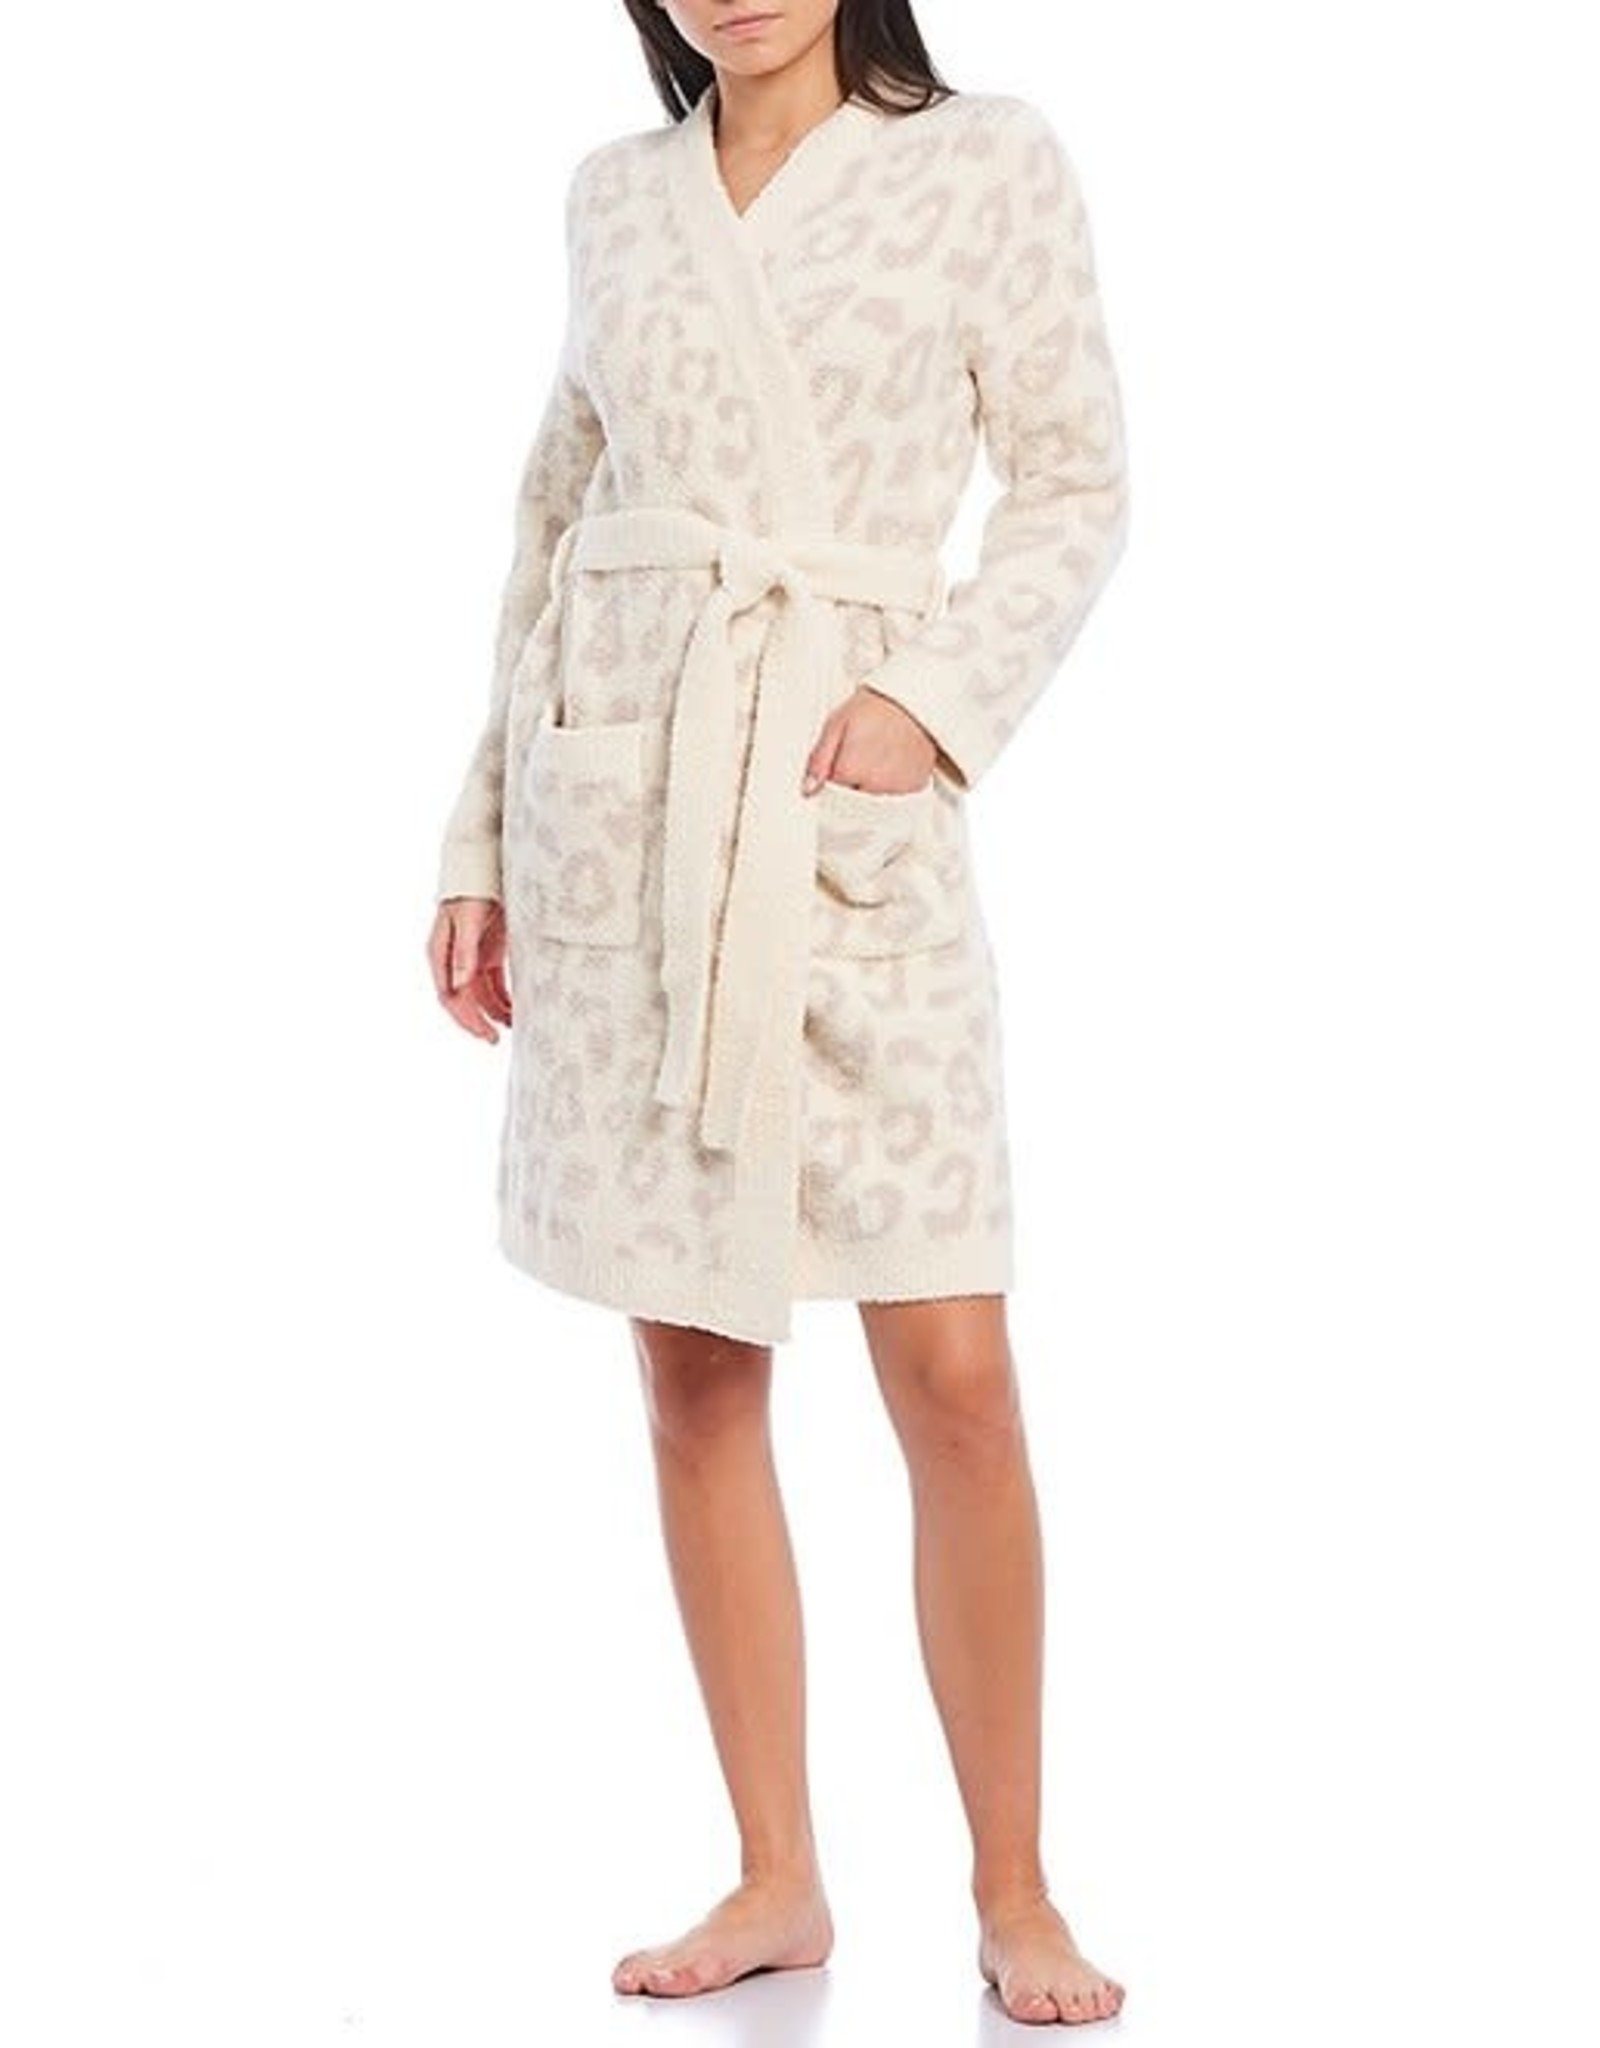 Barefoot Dreams Barefoot Dreams CozyChic Barefoot in the Wild Robe